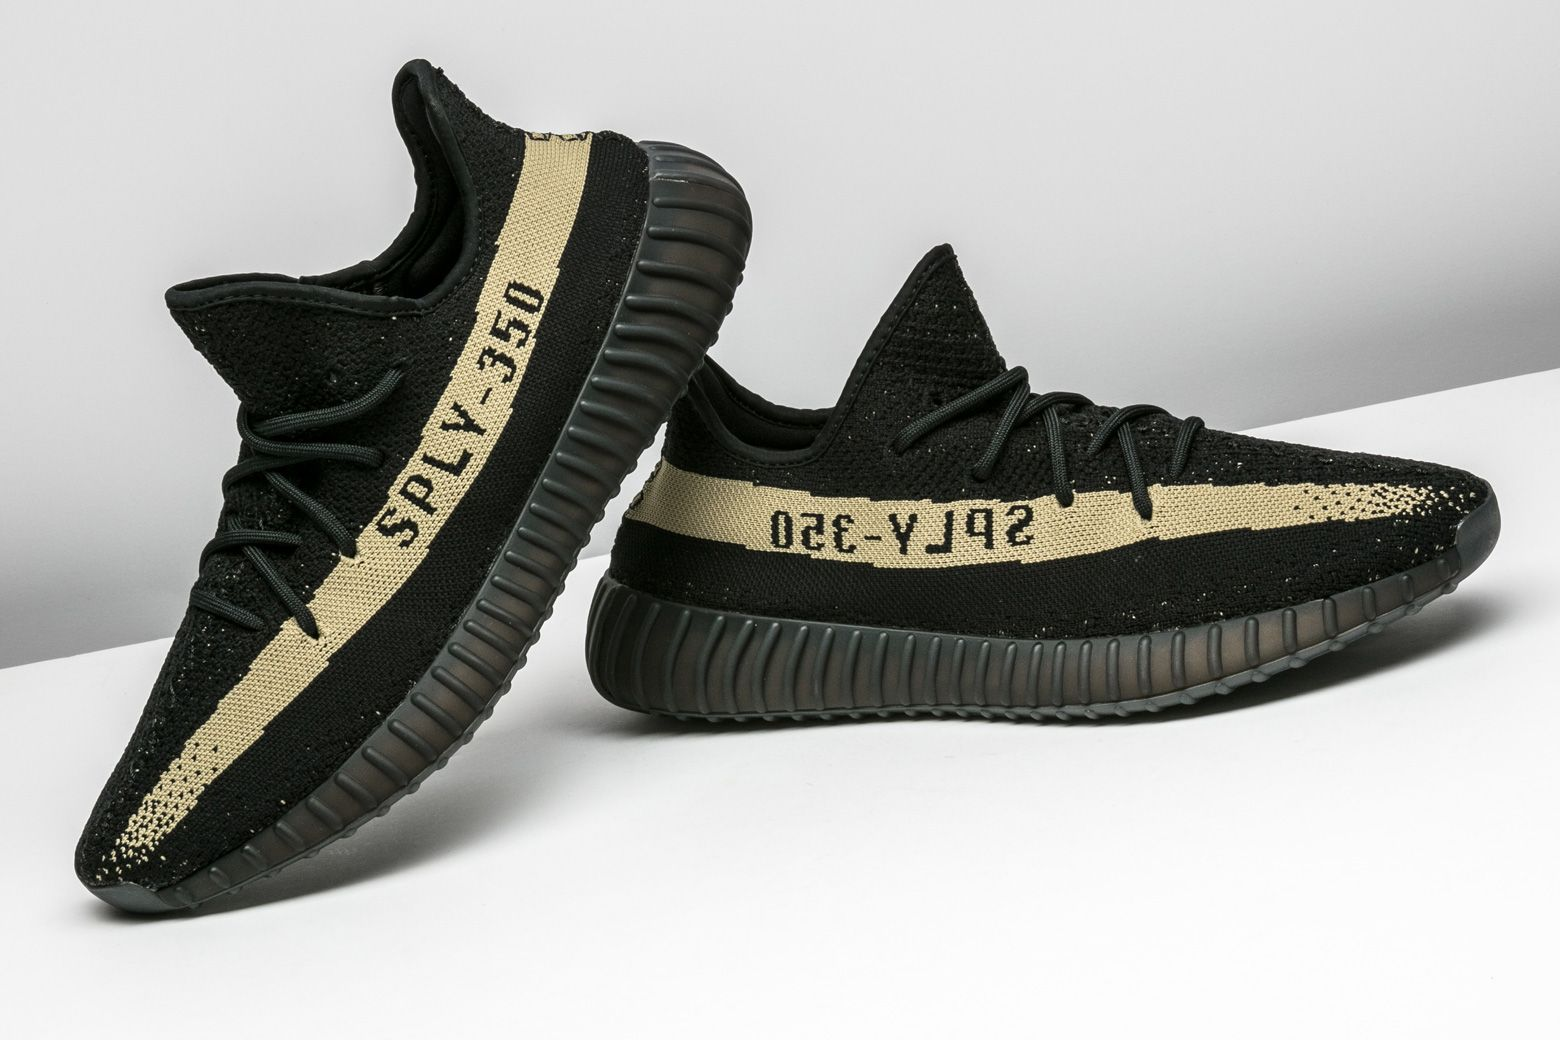 official photos c63d2 3acaa Yeezy Boost 350 V2 | Adidas Yeezy | Fashion, Fashion shoes ...